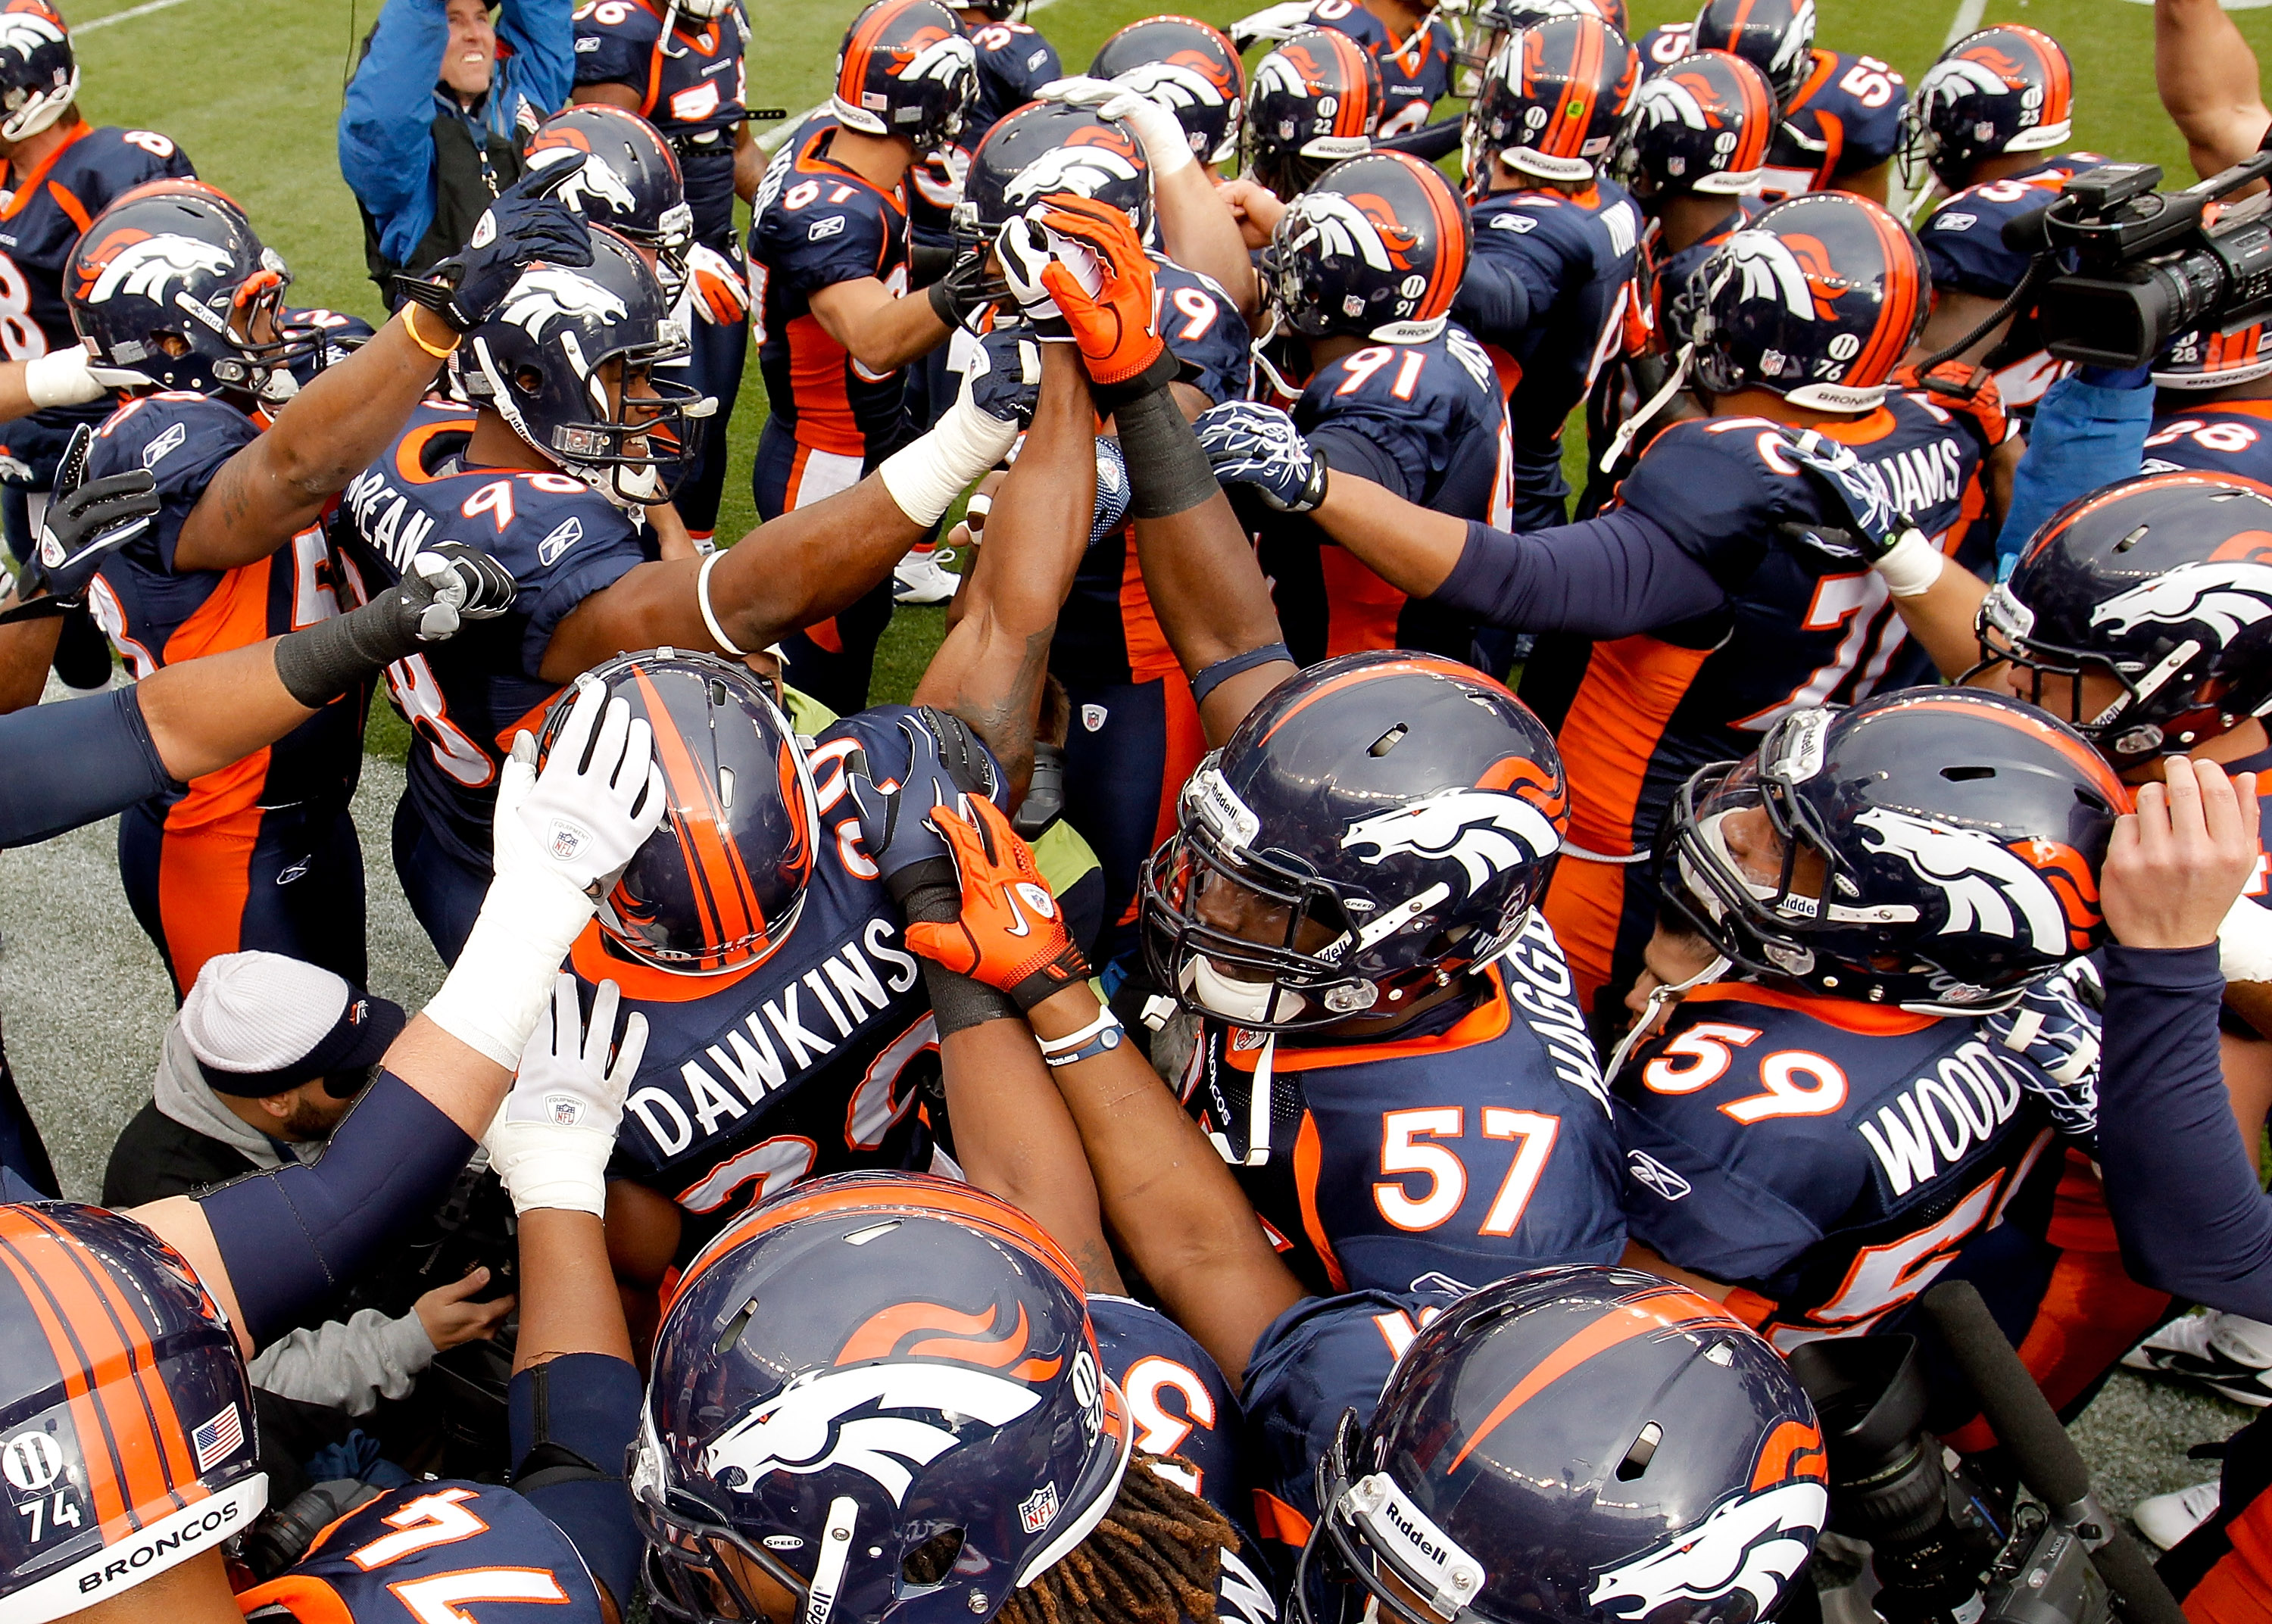 DENVER - NOVEMBER 28:  The Denver Broncos gather together before taking on the St. Louis Rams at INVESCO Field at Mile High on November 28, 2010 in Denver, Colorado. (Photo by Justin Edmonds/Getty Images)